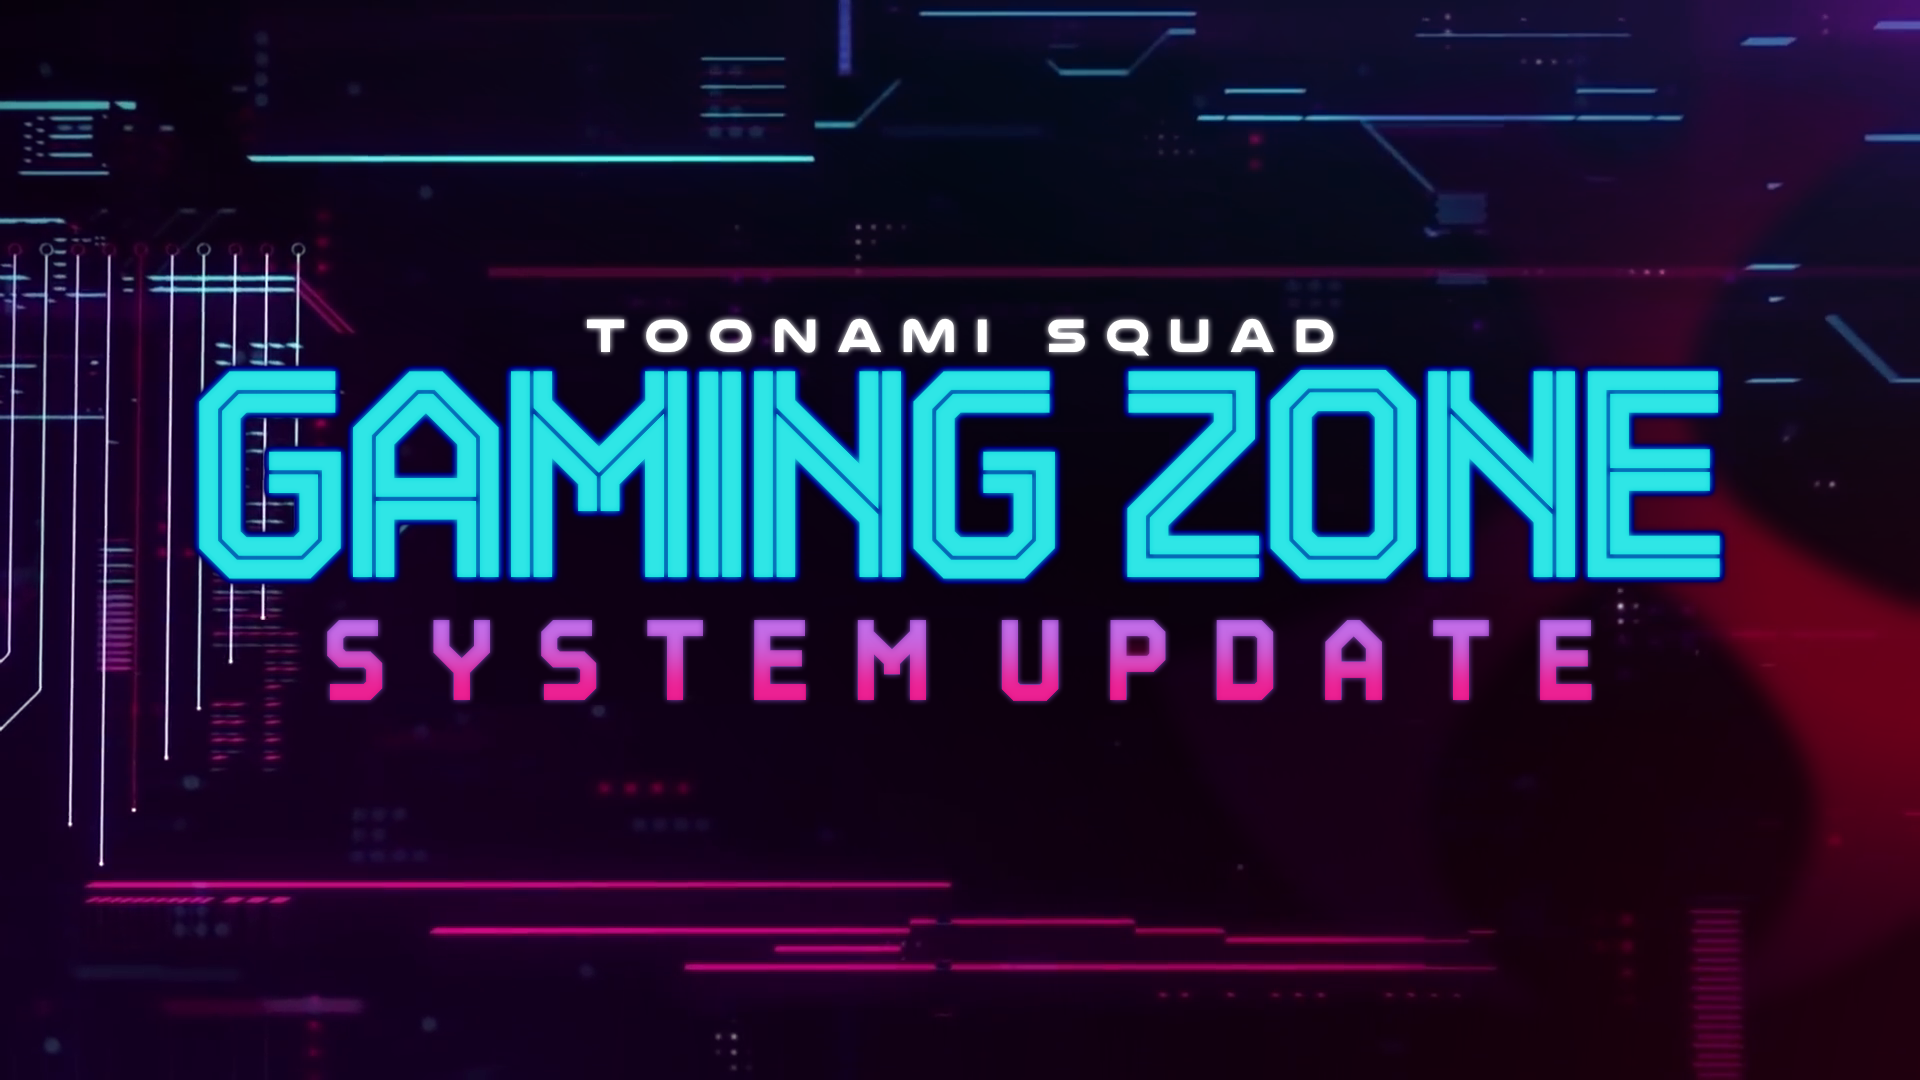 Toonami Squad Gaming Zone System Update 2/15